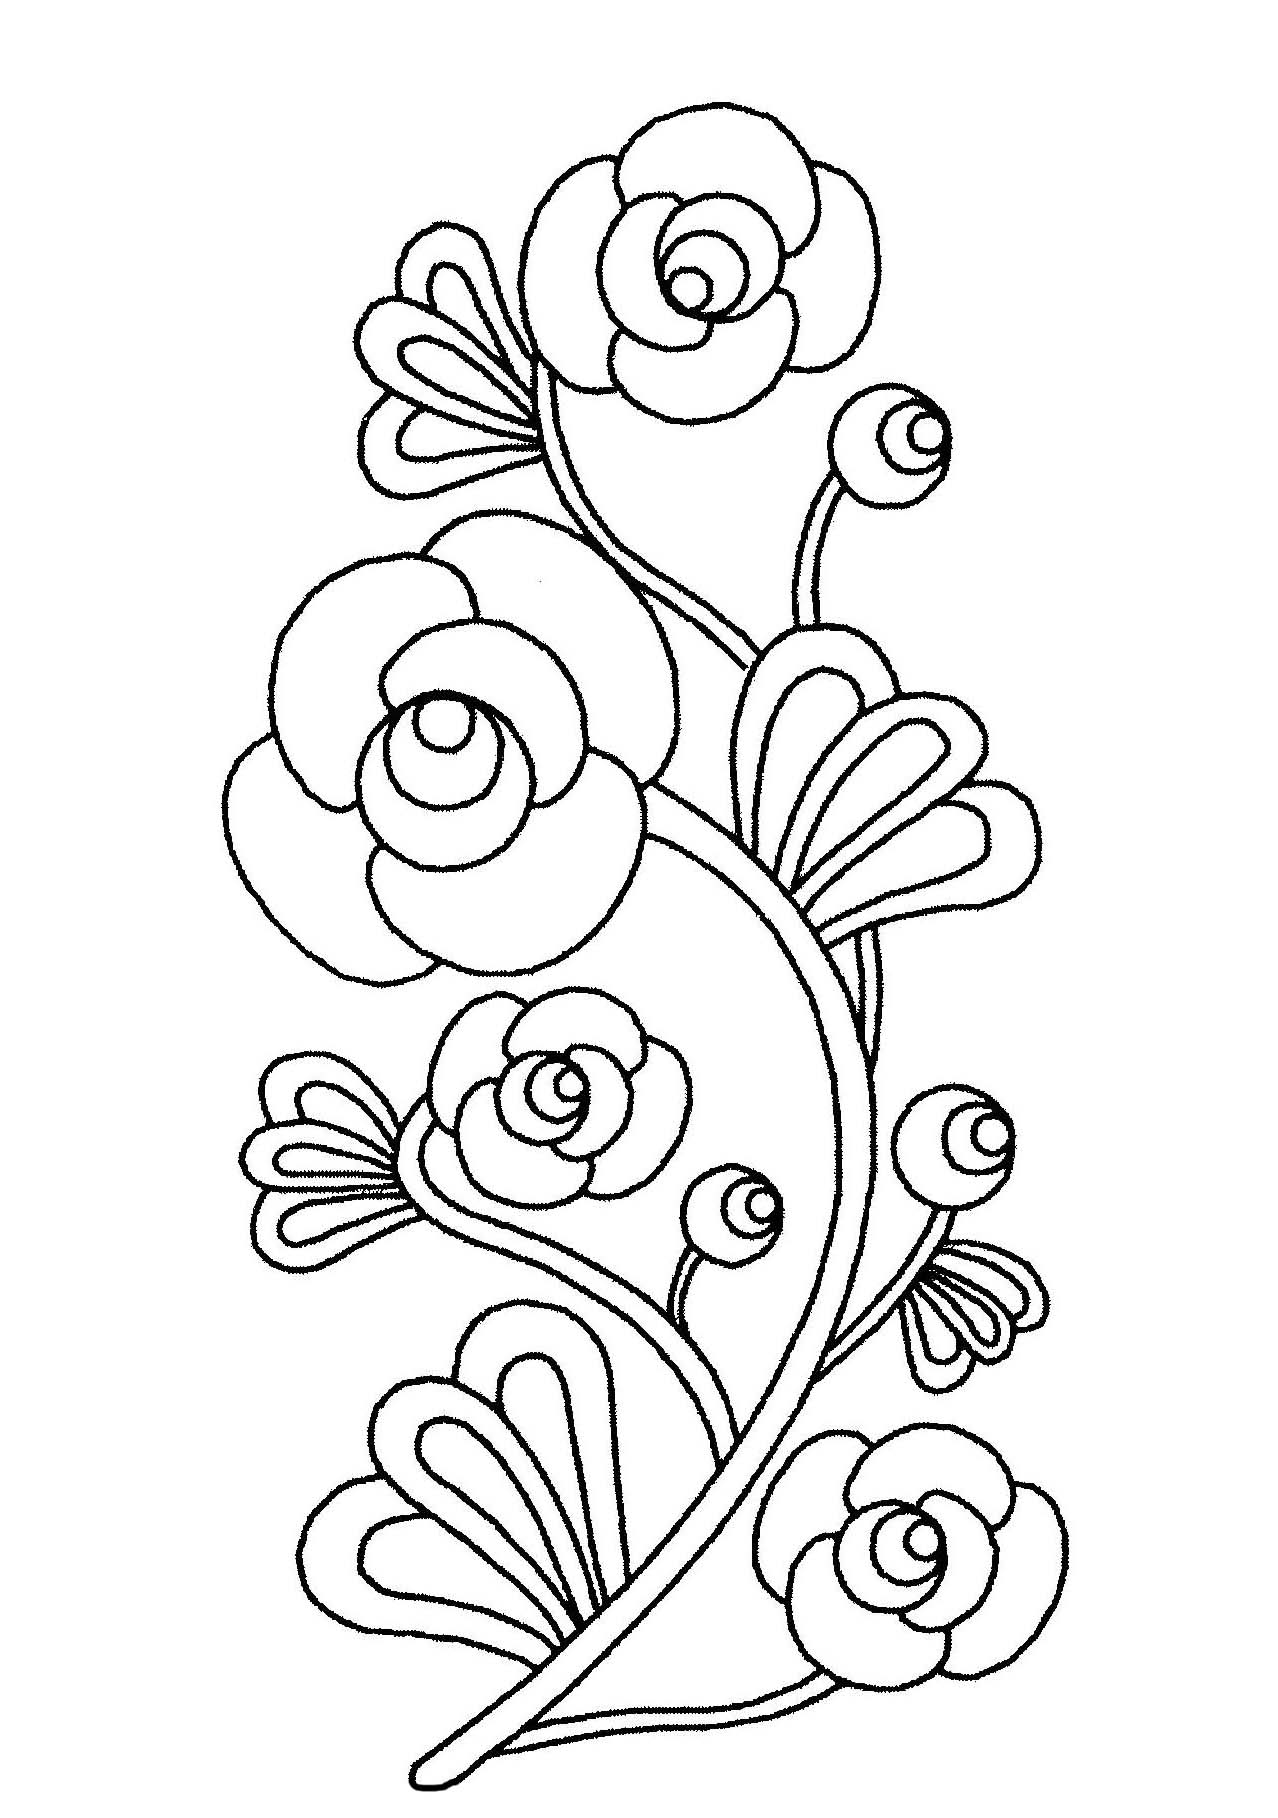 coloring pictures of a flower beautiful flowers flowers coloring pages for kids to pictures coloring flower of a